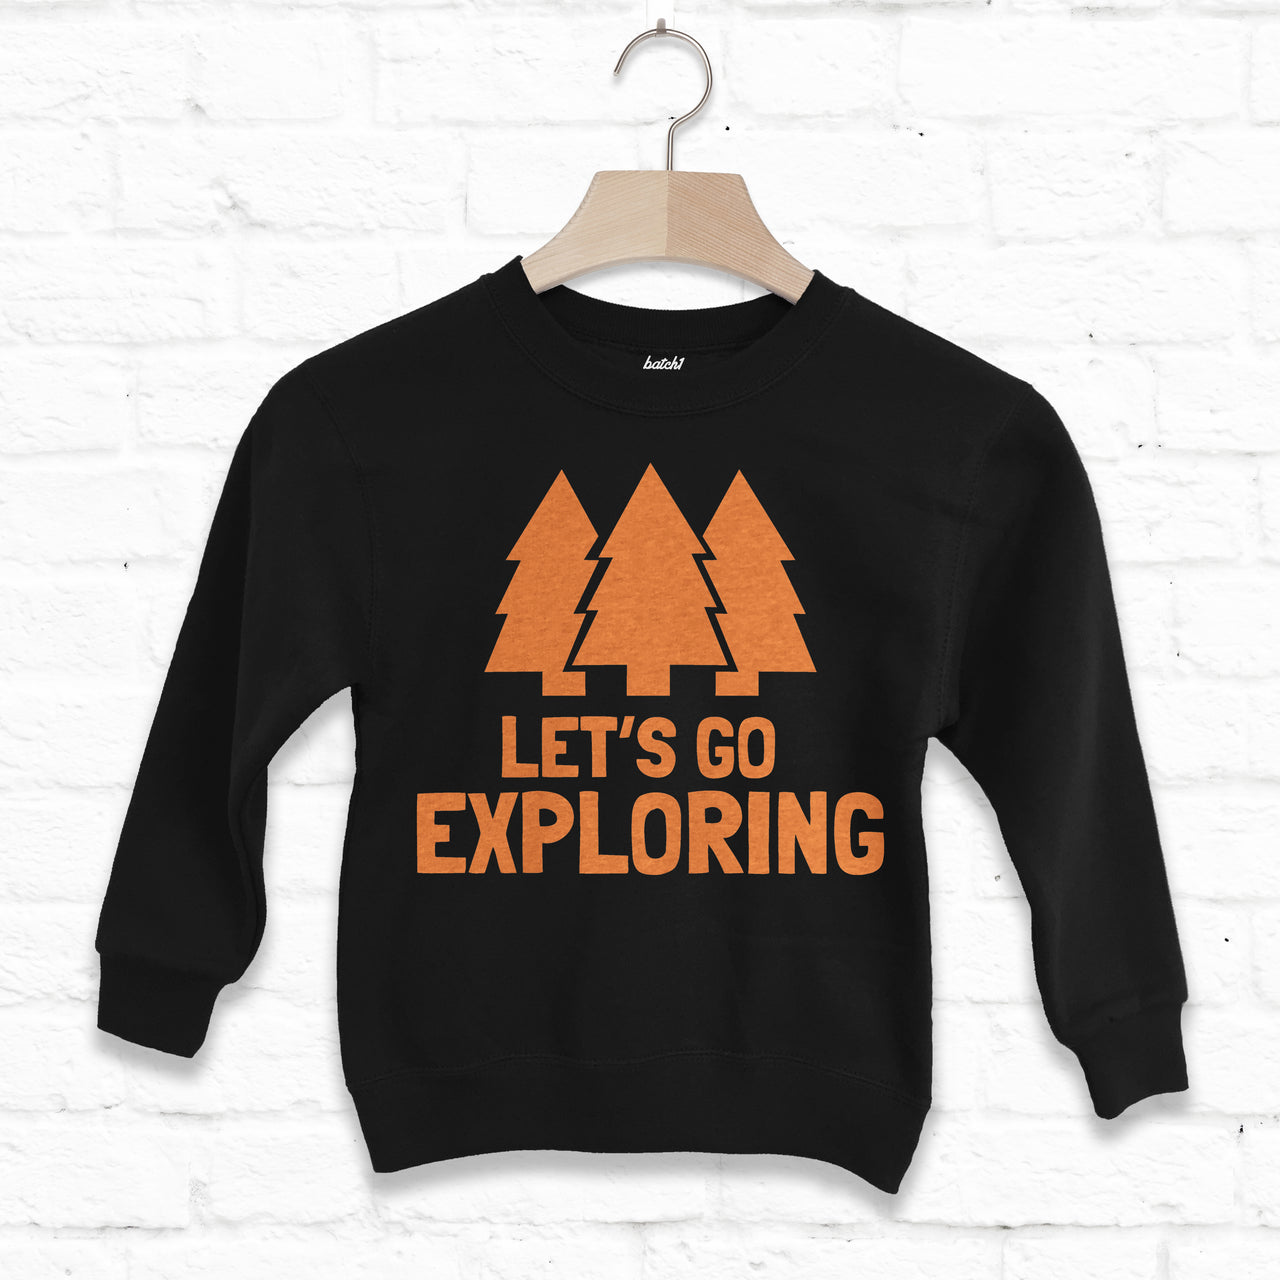 Let's Go Exploring Children's Slogan Sweatshirt